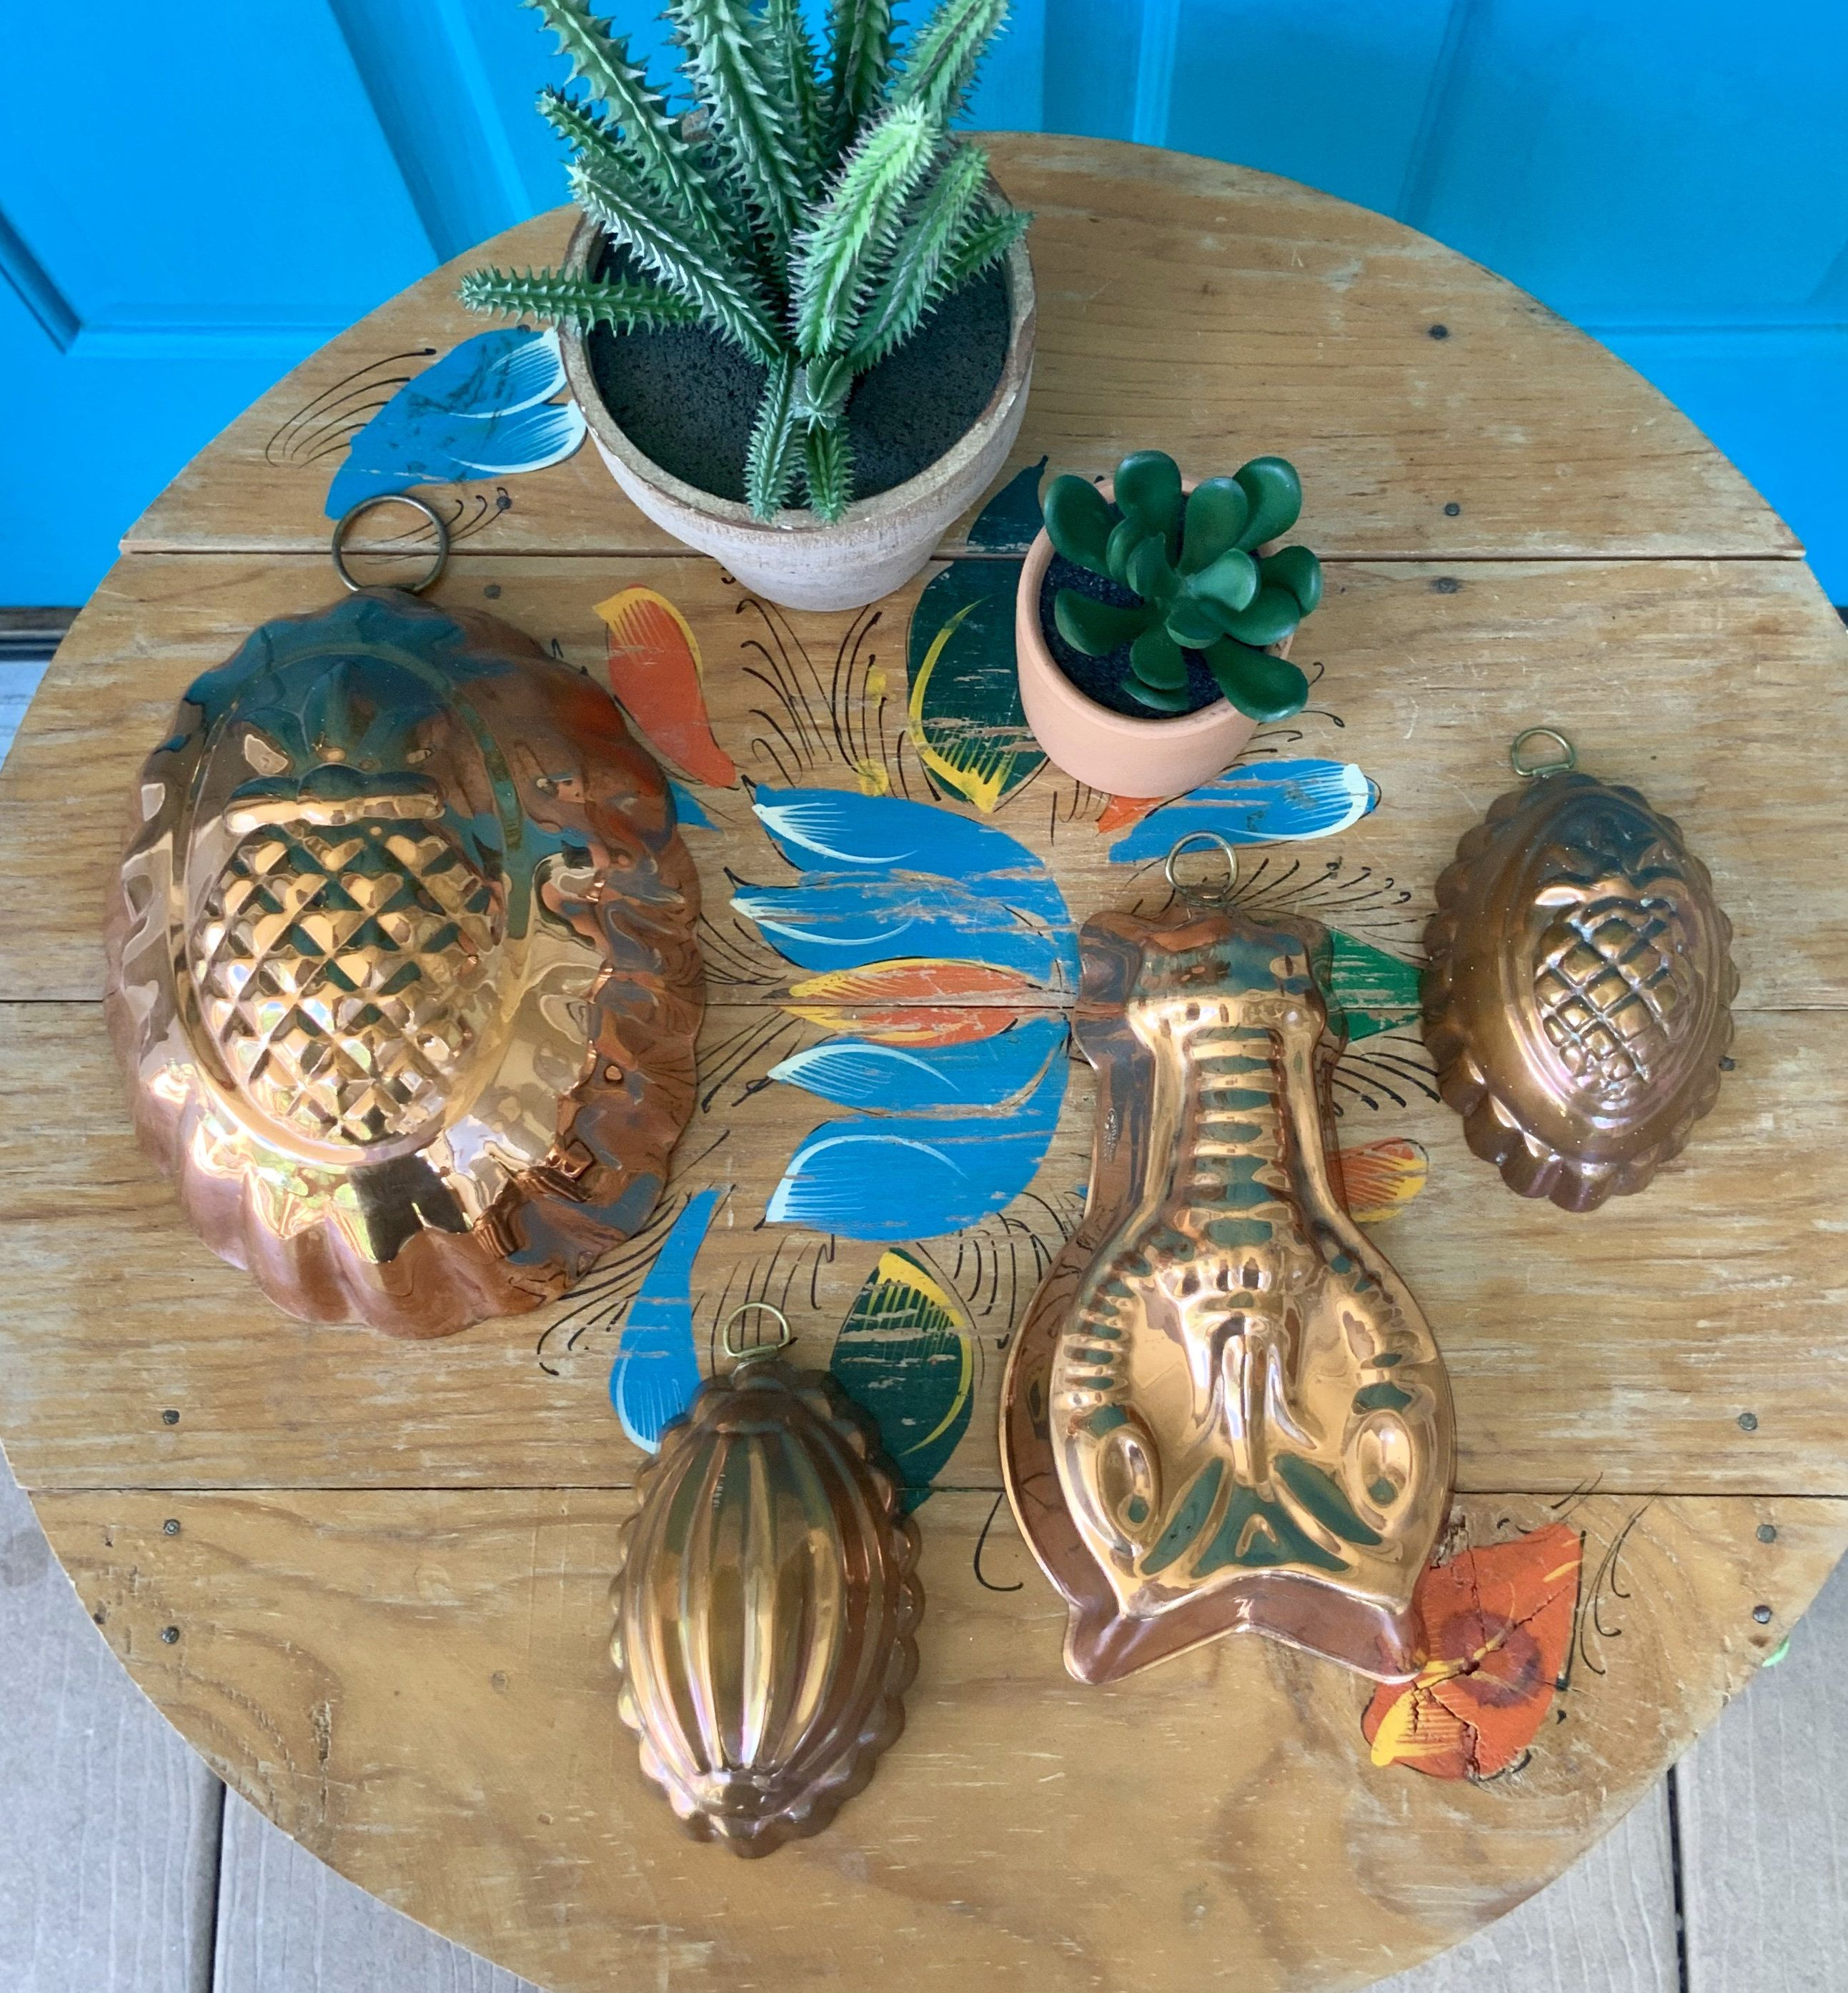 Free shippingvintage set of 4 pineapple lobster